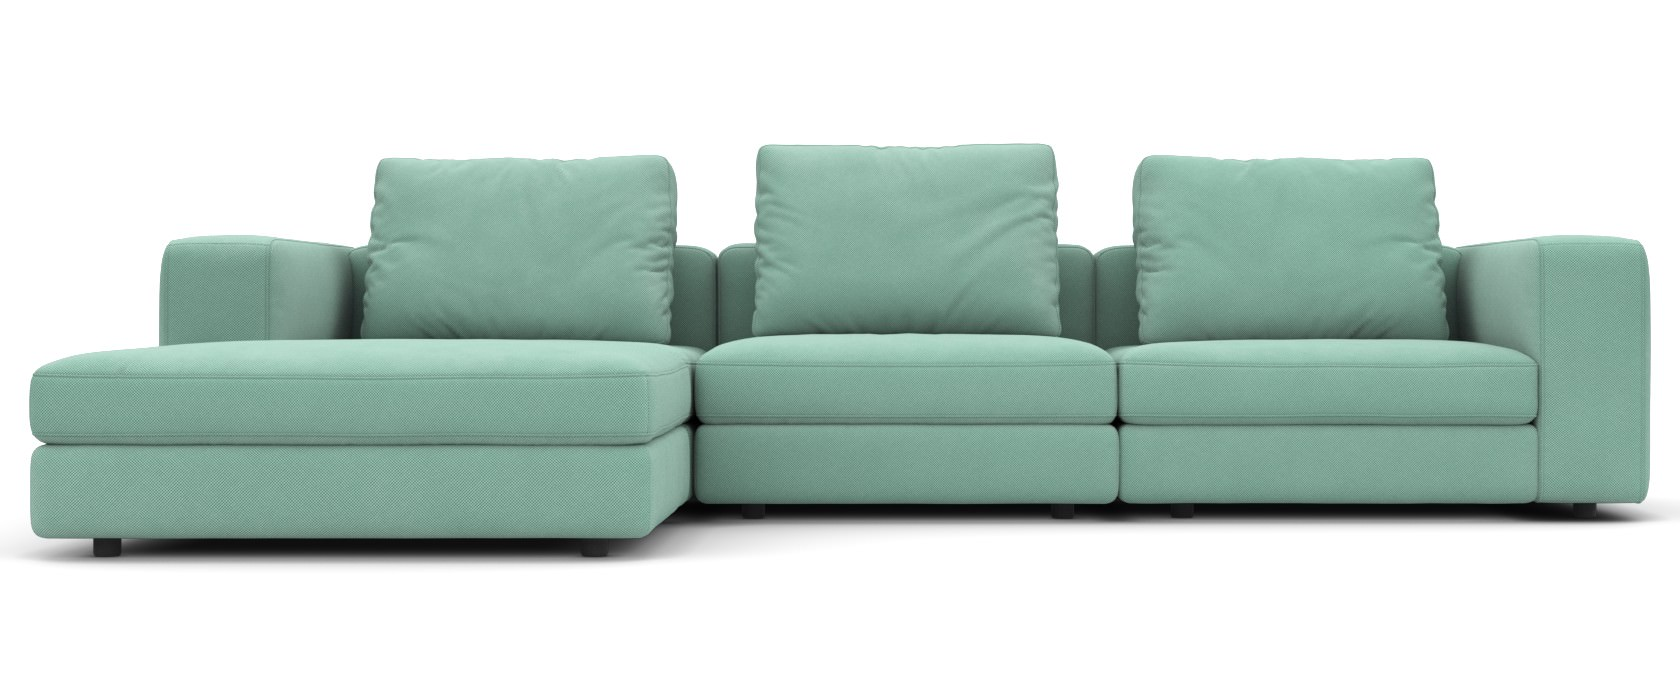 Schlafsofa mit Chaiselongue Domino